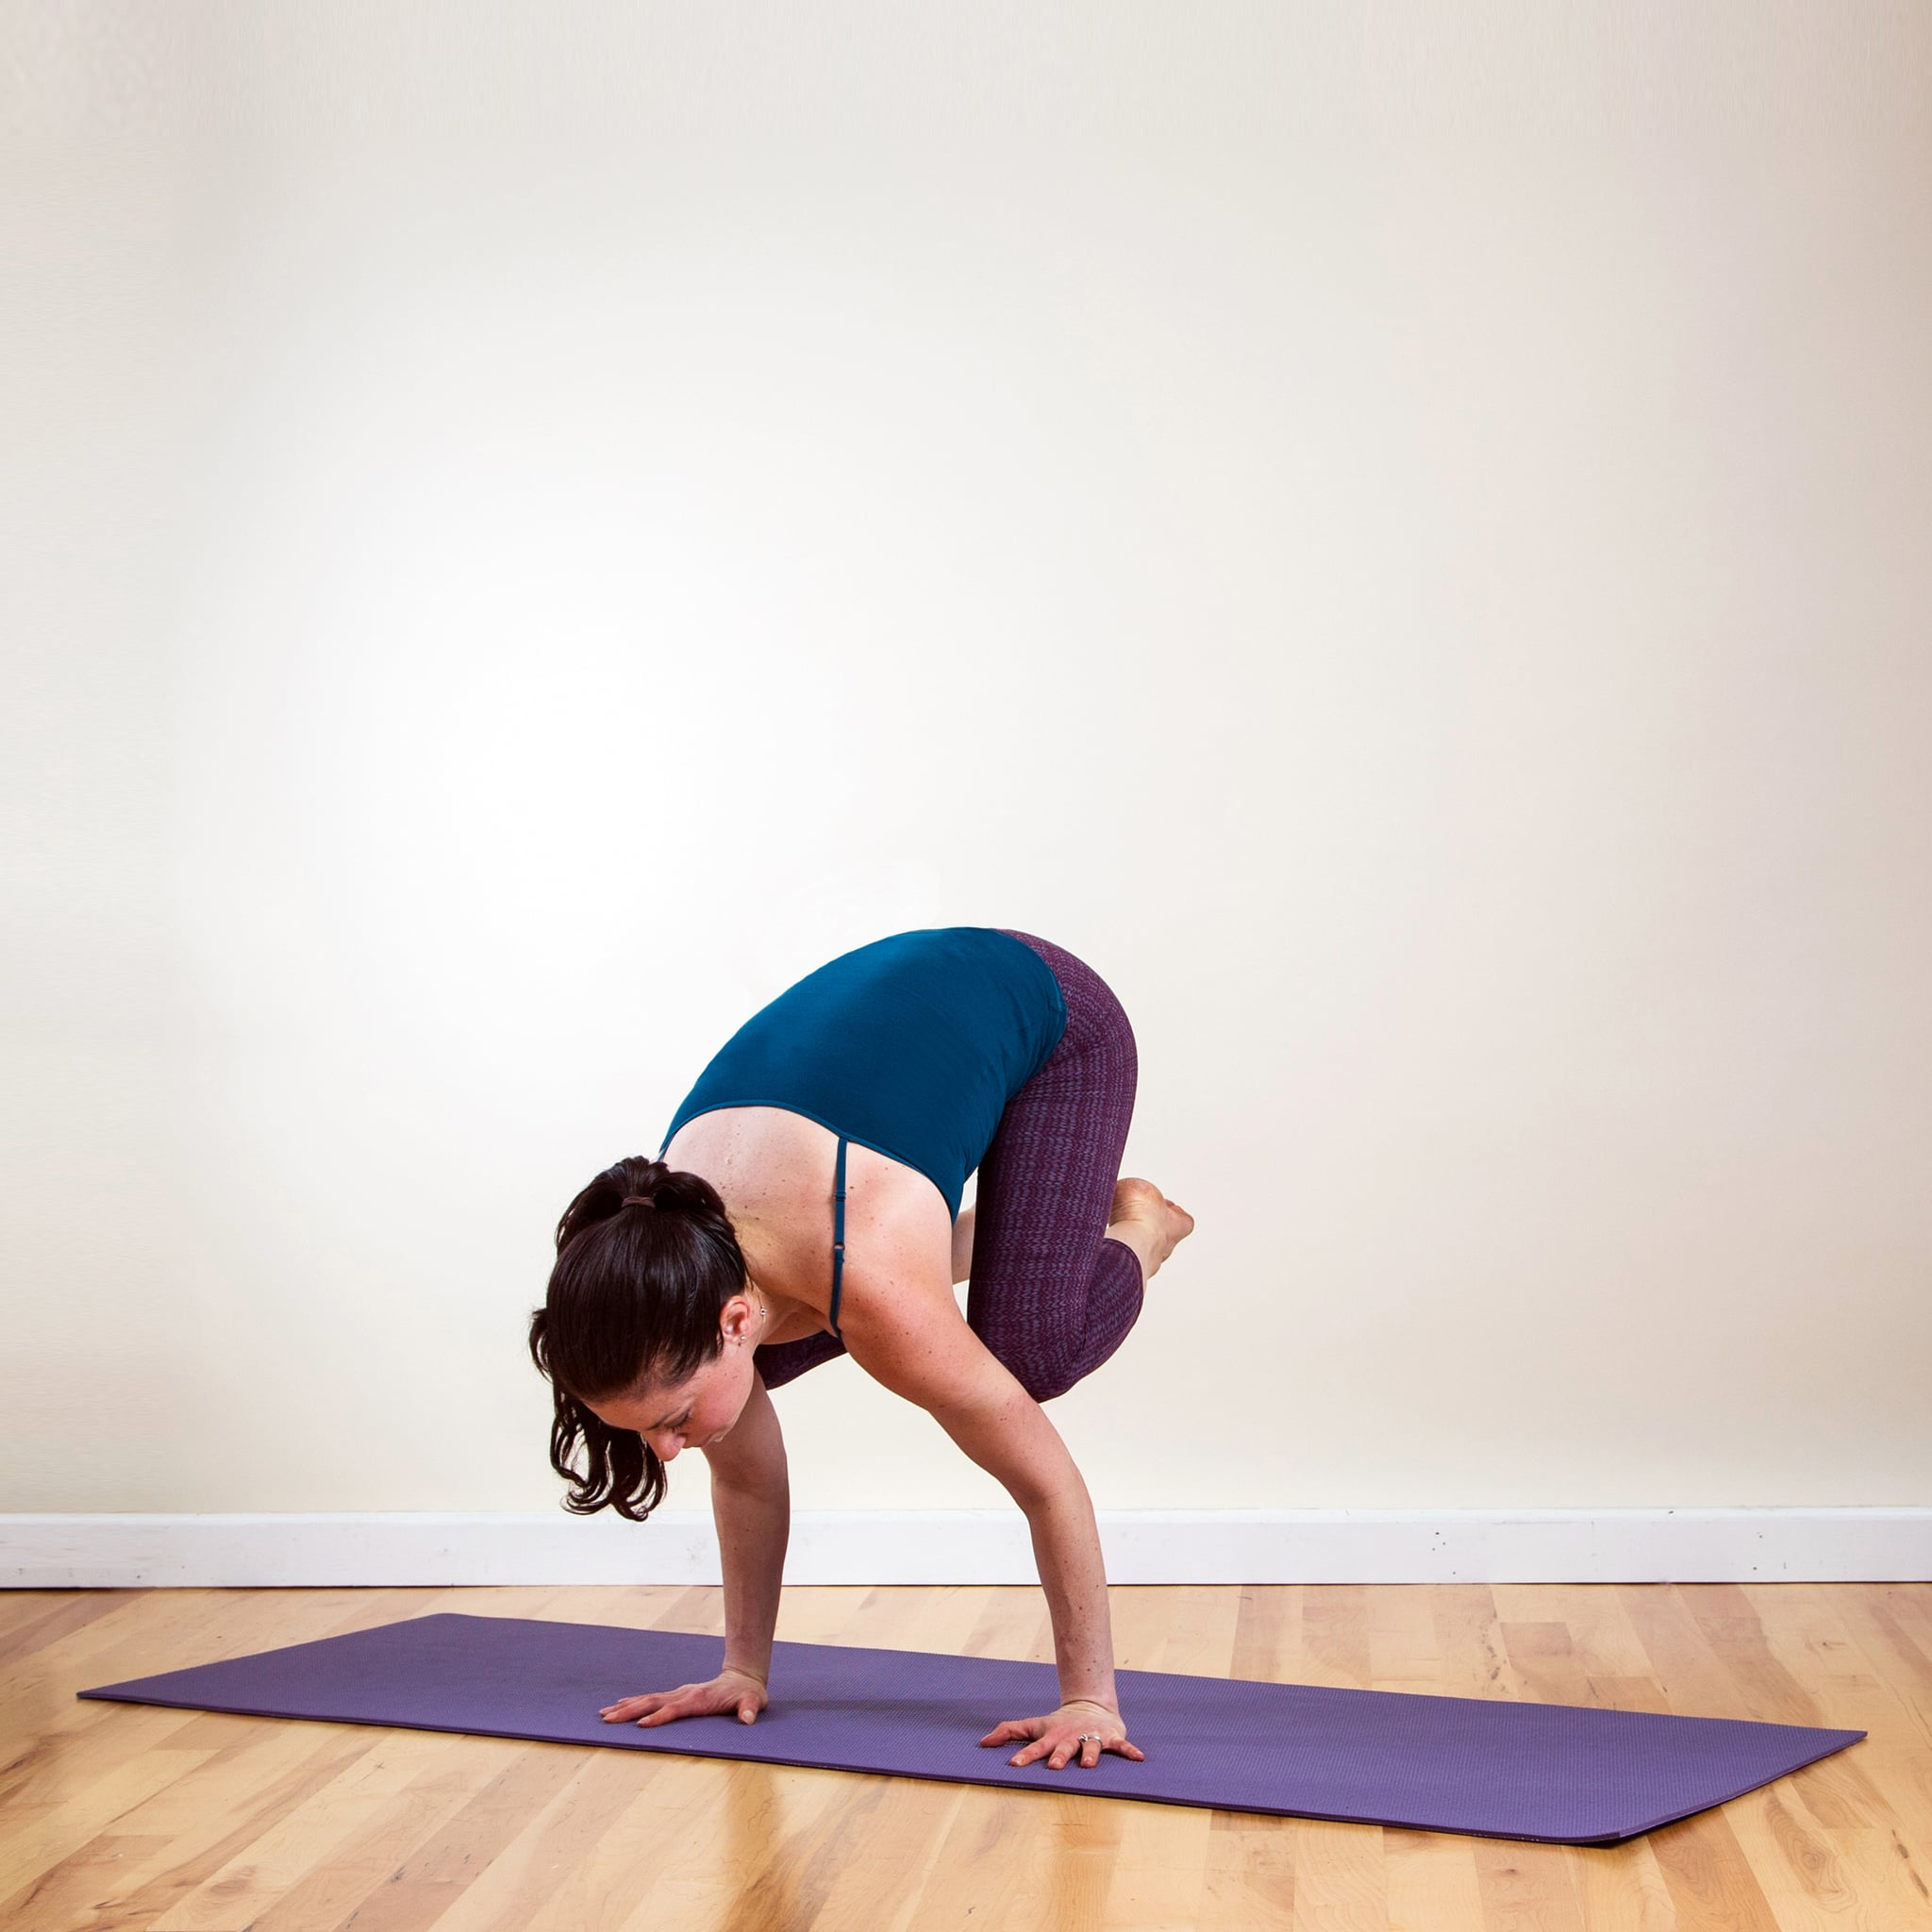 How to do the crow pose popsugar fitness australia no doubt about it crow pose is a challenge but definitely one you can master if conquering crow is on your yoga agenda here are some tips to get you solutioingenieria